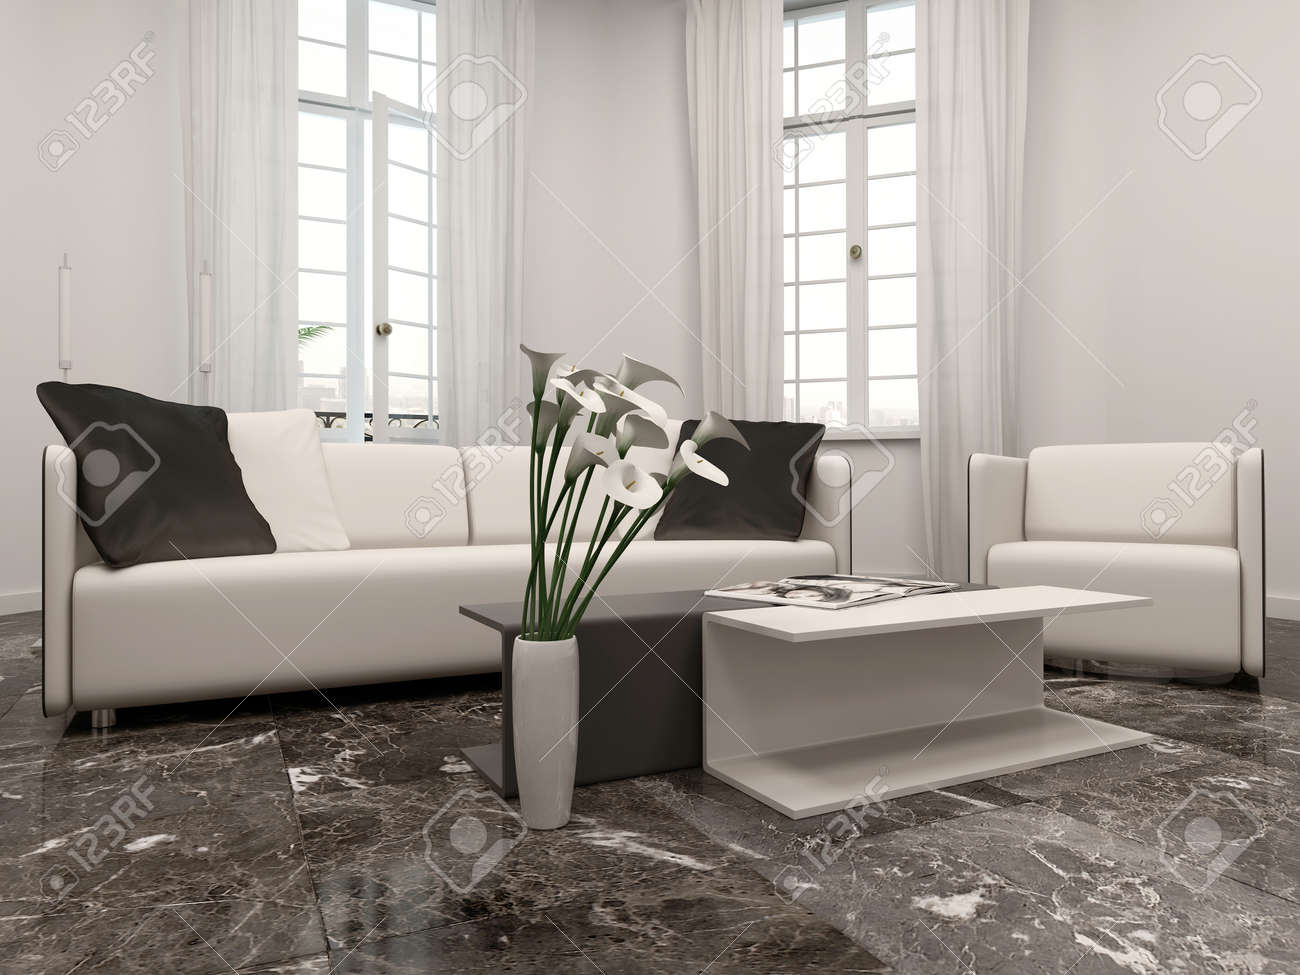 . White living room interiow with bay window  couch and black marble